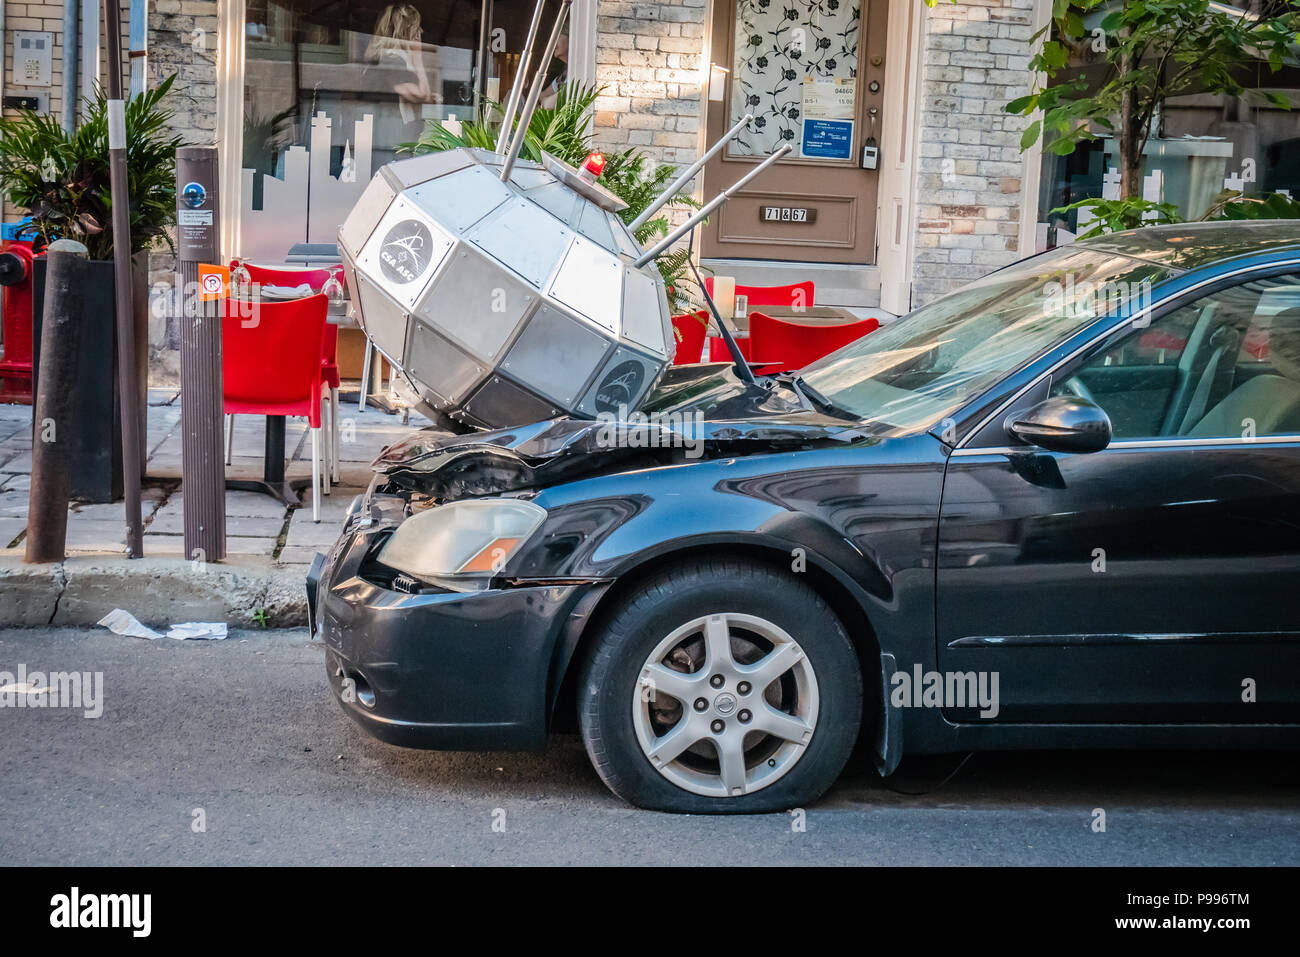 A silver object damaged the front of a black car - Stock Image